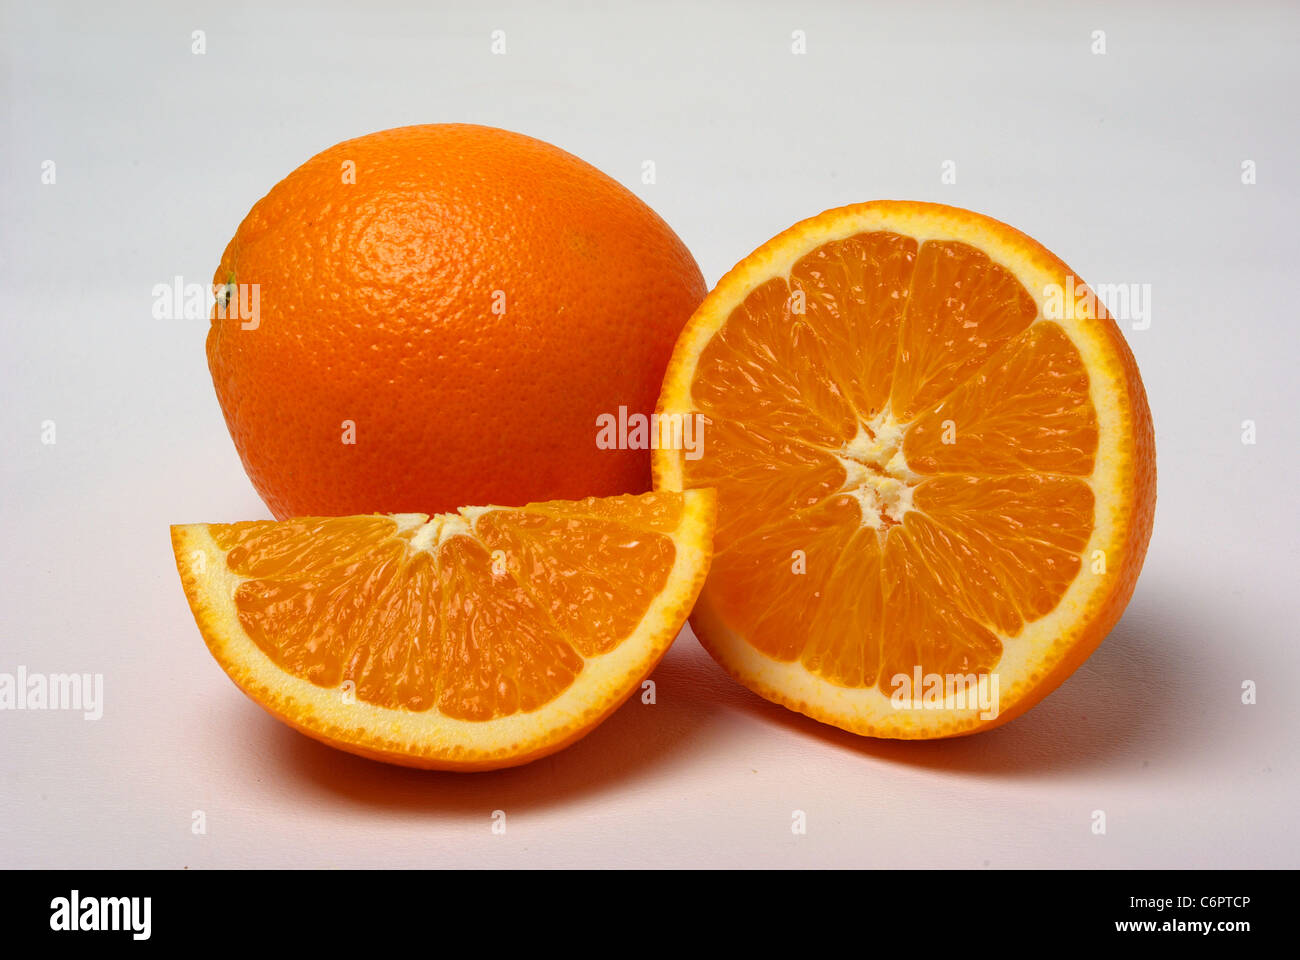 Orange and slices of oranges sit on a white background. - Stock Image